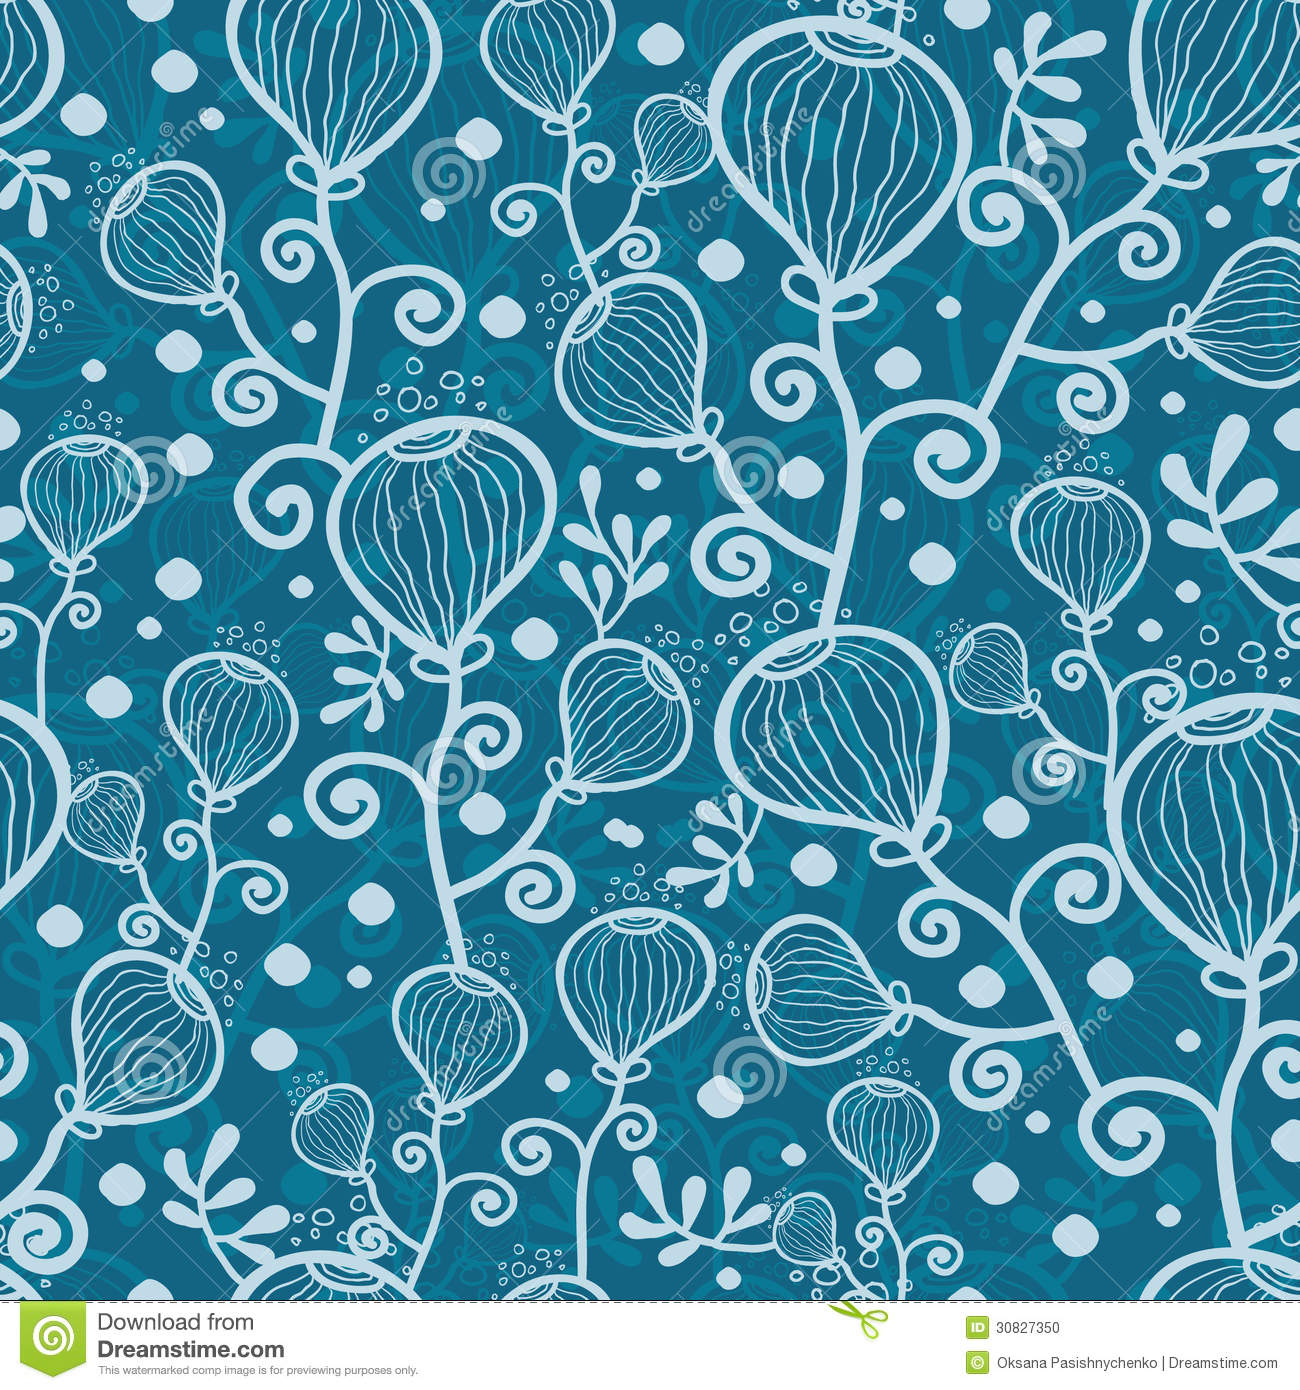 Underwater Pattern Royalty Free Stock Photography